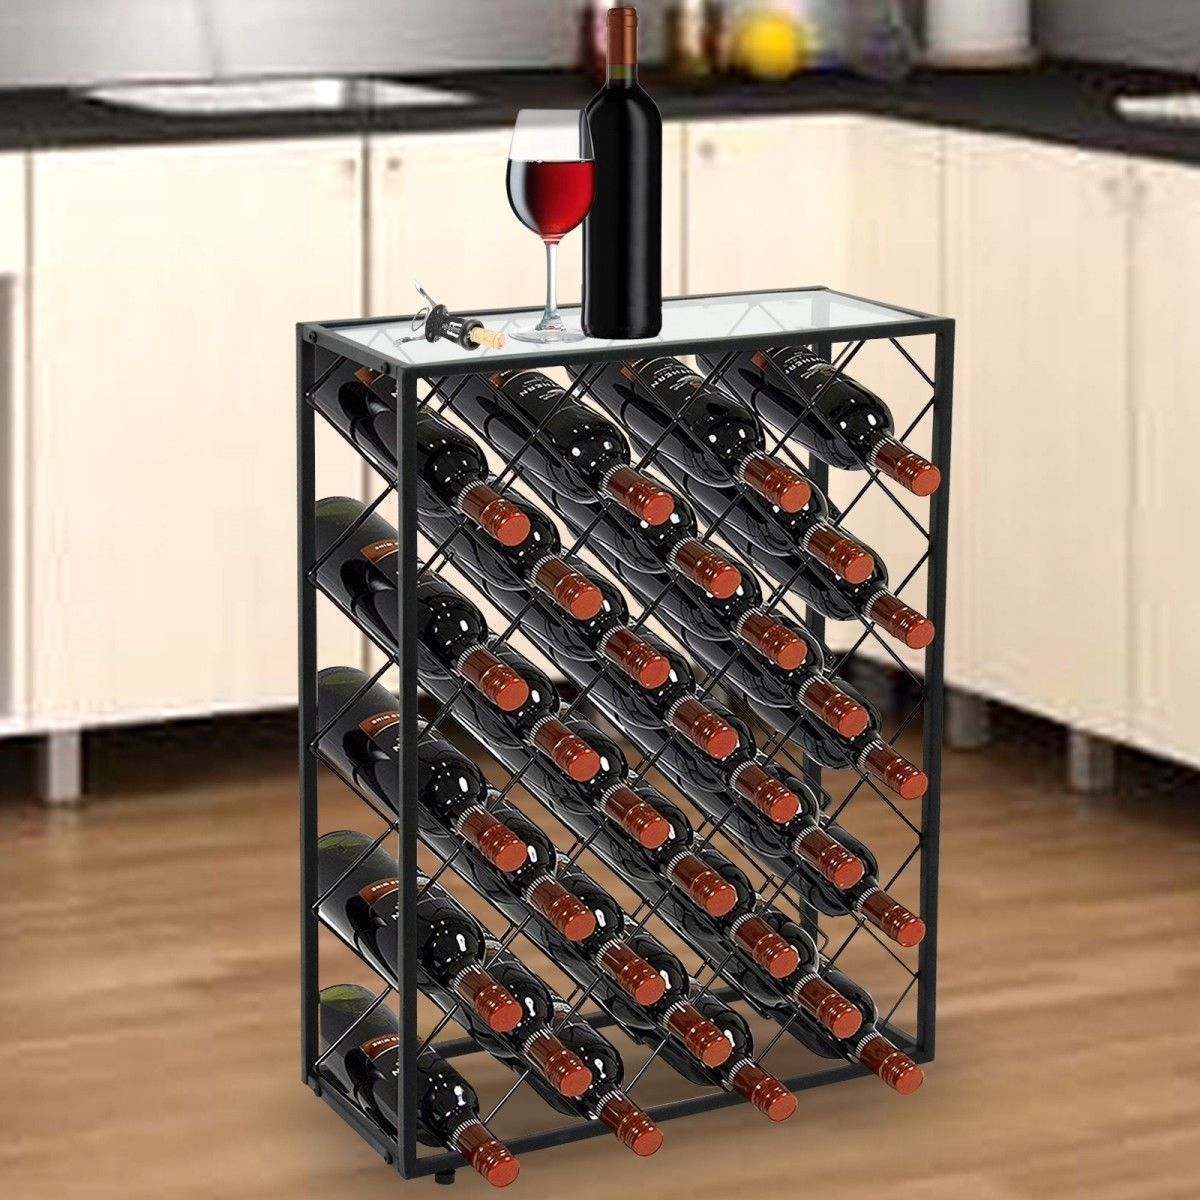 Wine storage table Wine Bottle Zeny 32 Bottle Wine Rack Storage Display Table Cork Storage Holder Metal Home Decor Confortdoorscom Wine Tables